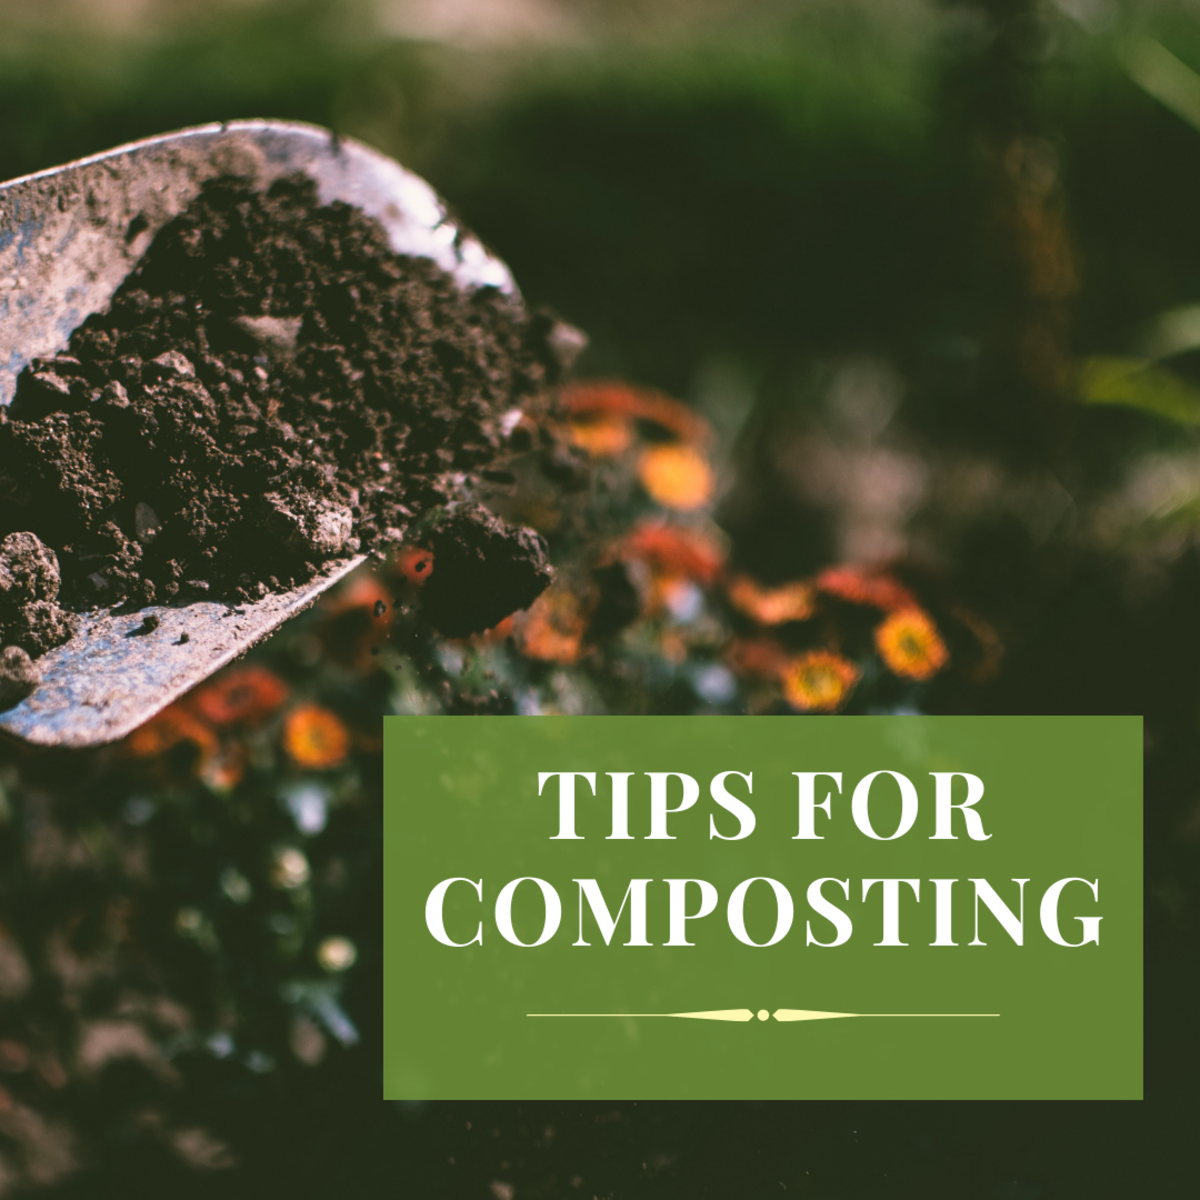 How to Use a Composting Bin or Create a Compost Pile